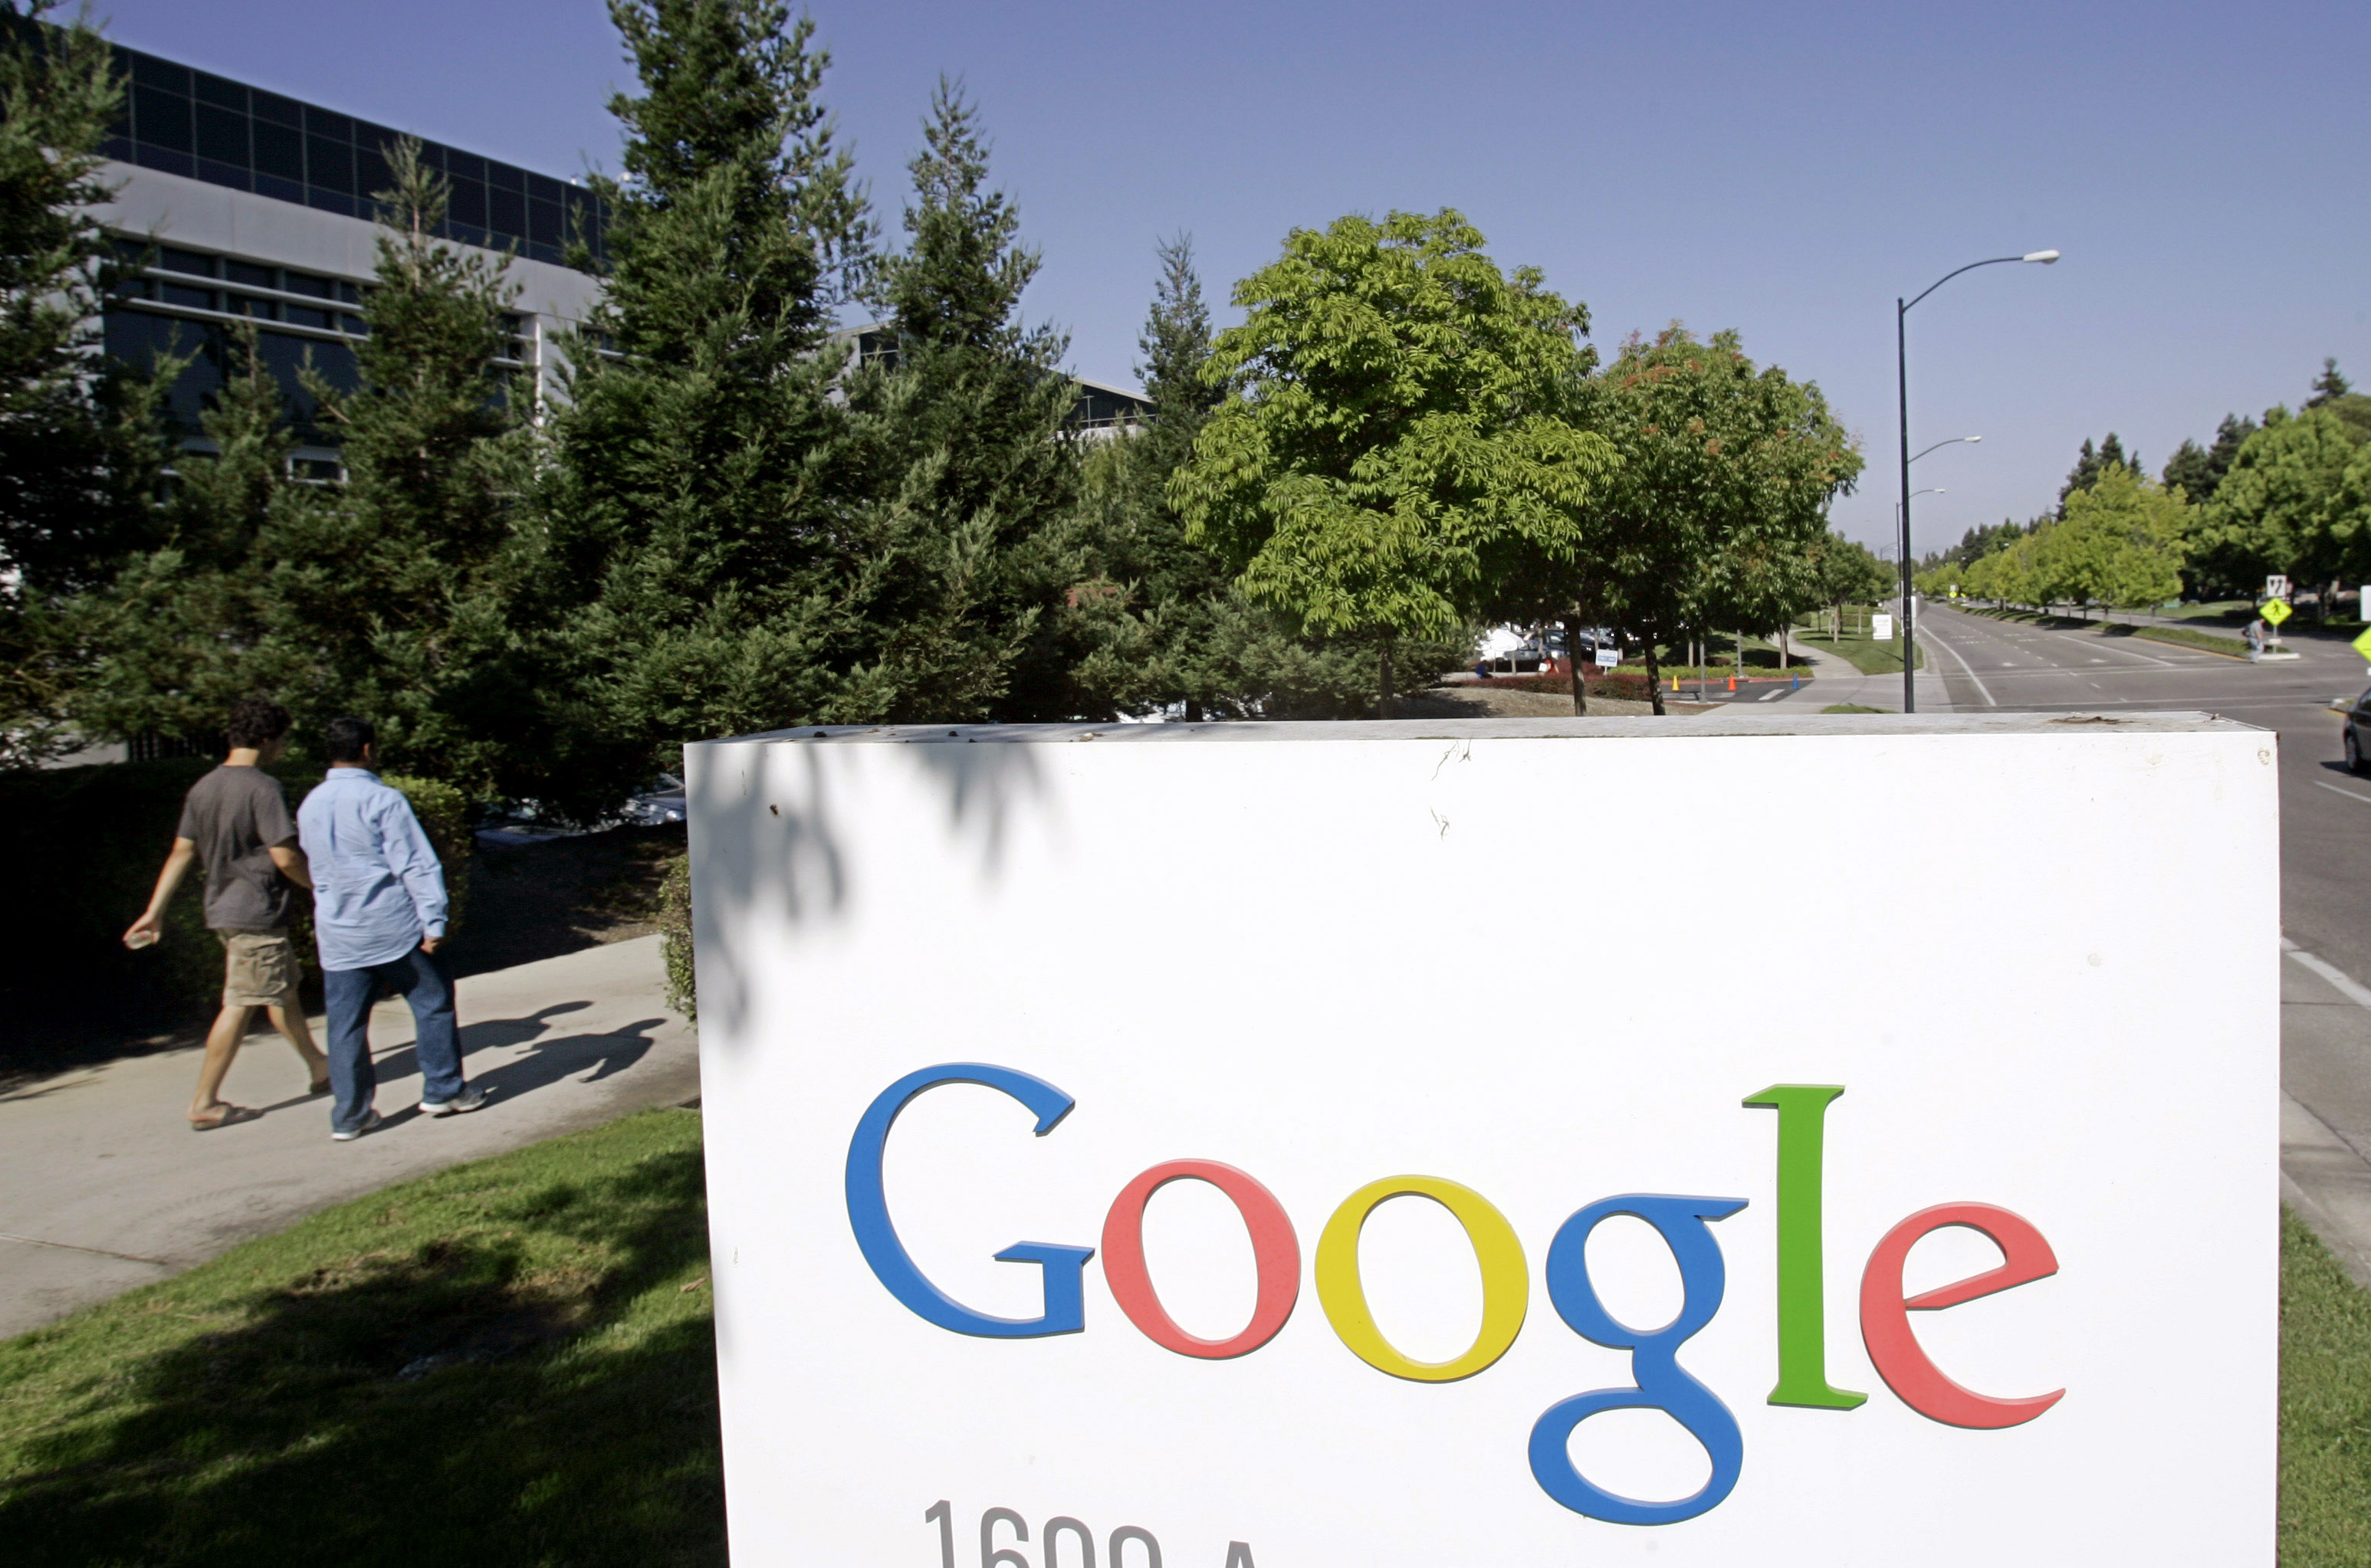 US gives Google go-ahead for $900 million bid on Nortel patents